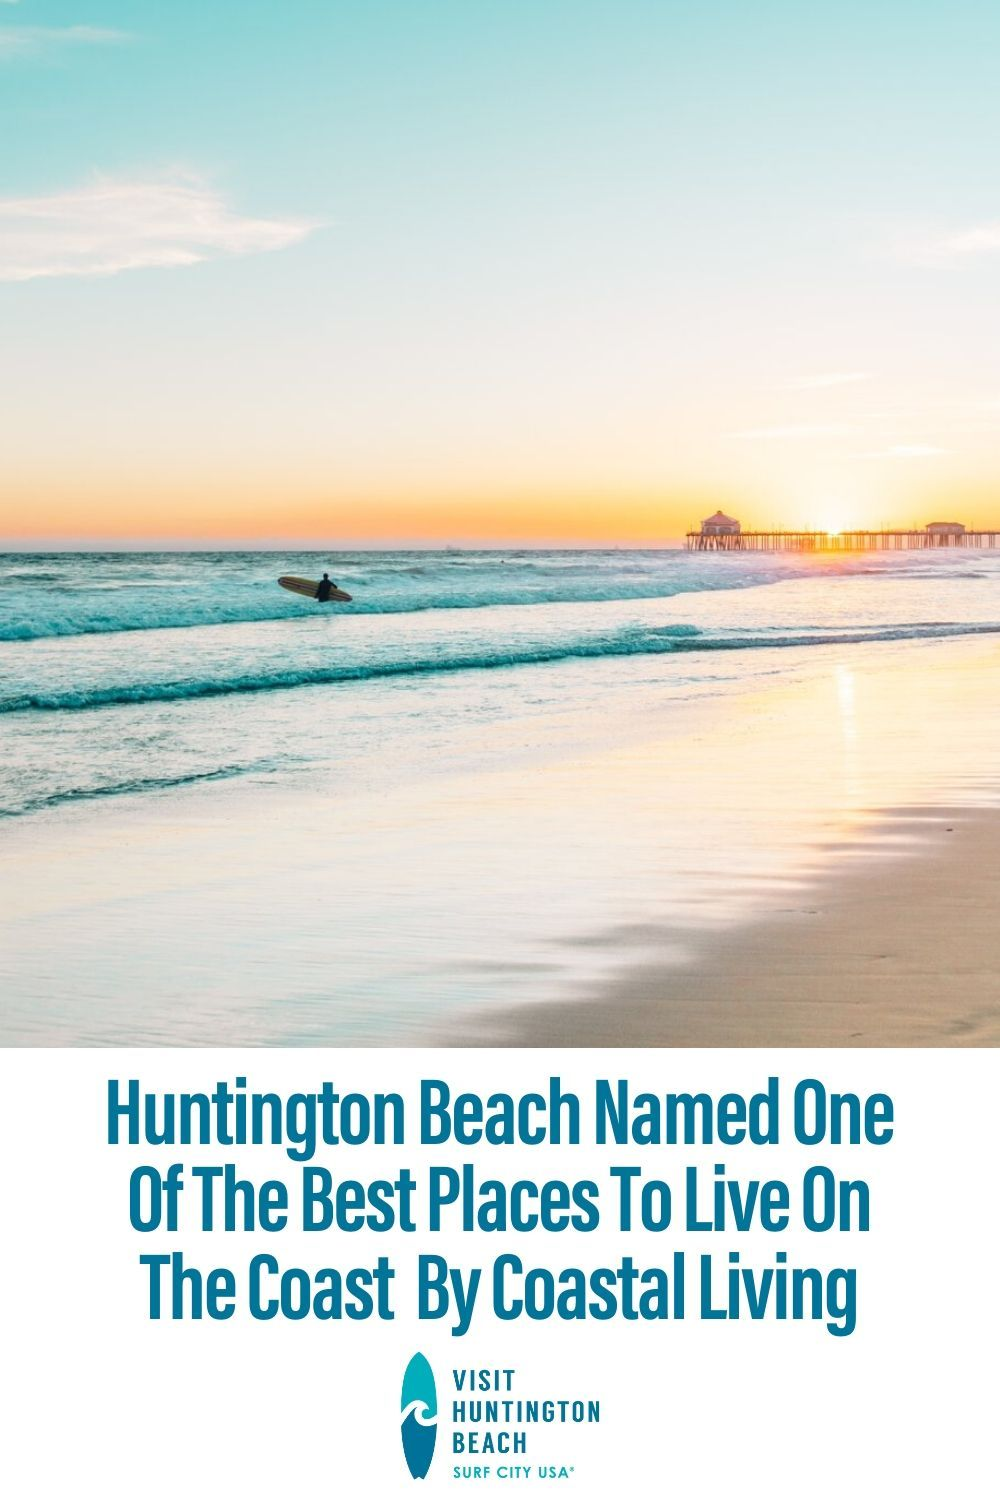 Huntington Beach Named Top Place To Live On The Coast By Coastal Living In 2020 Beach Best Places To Live Huntington Beach